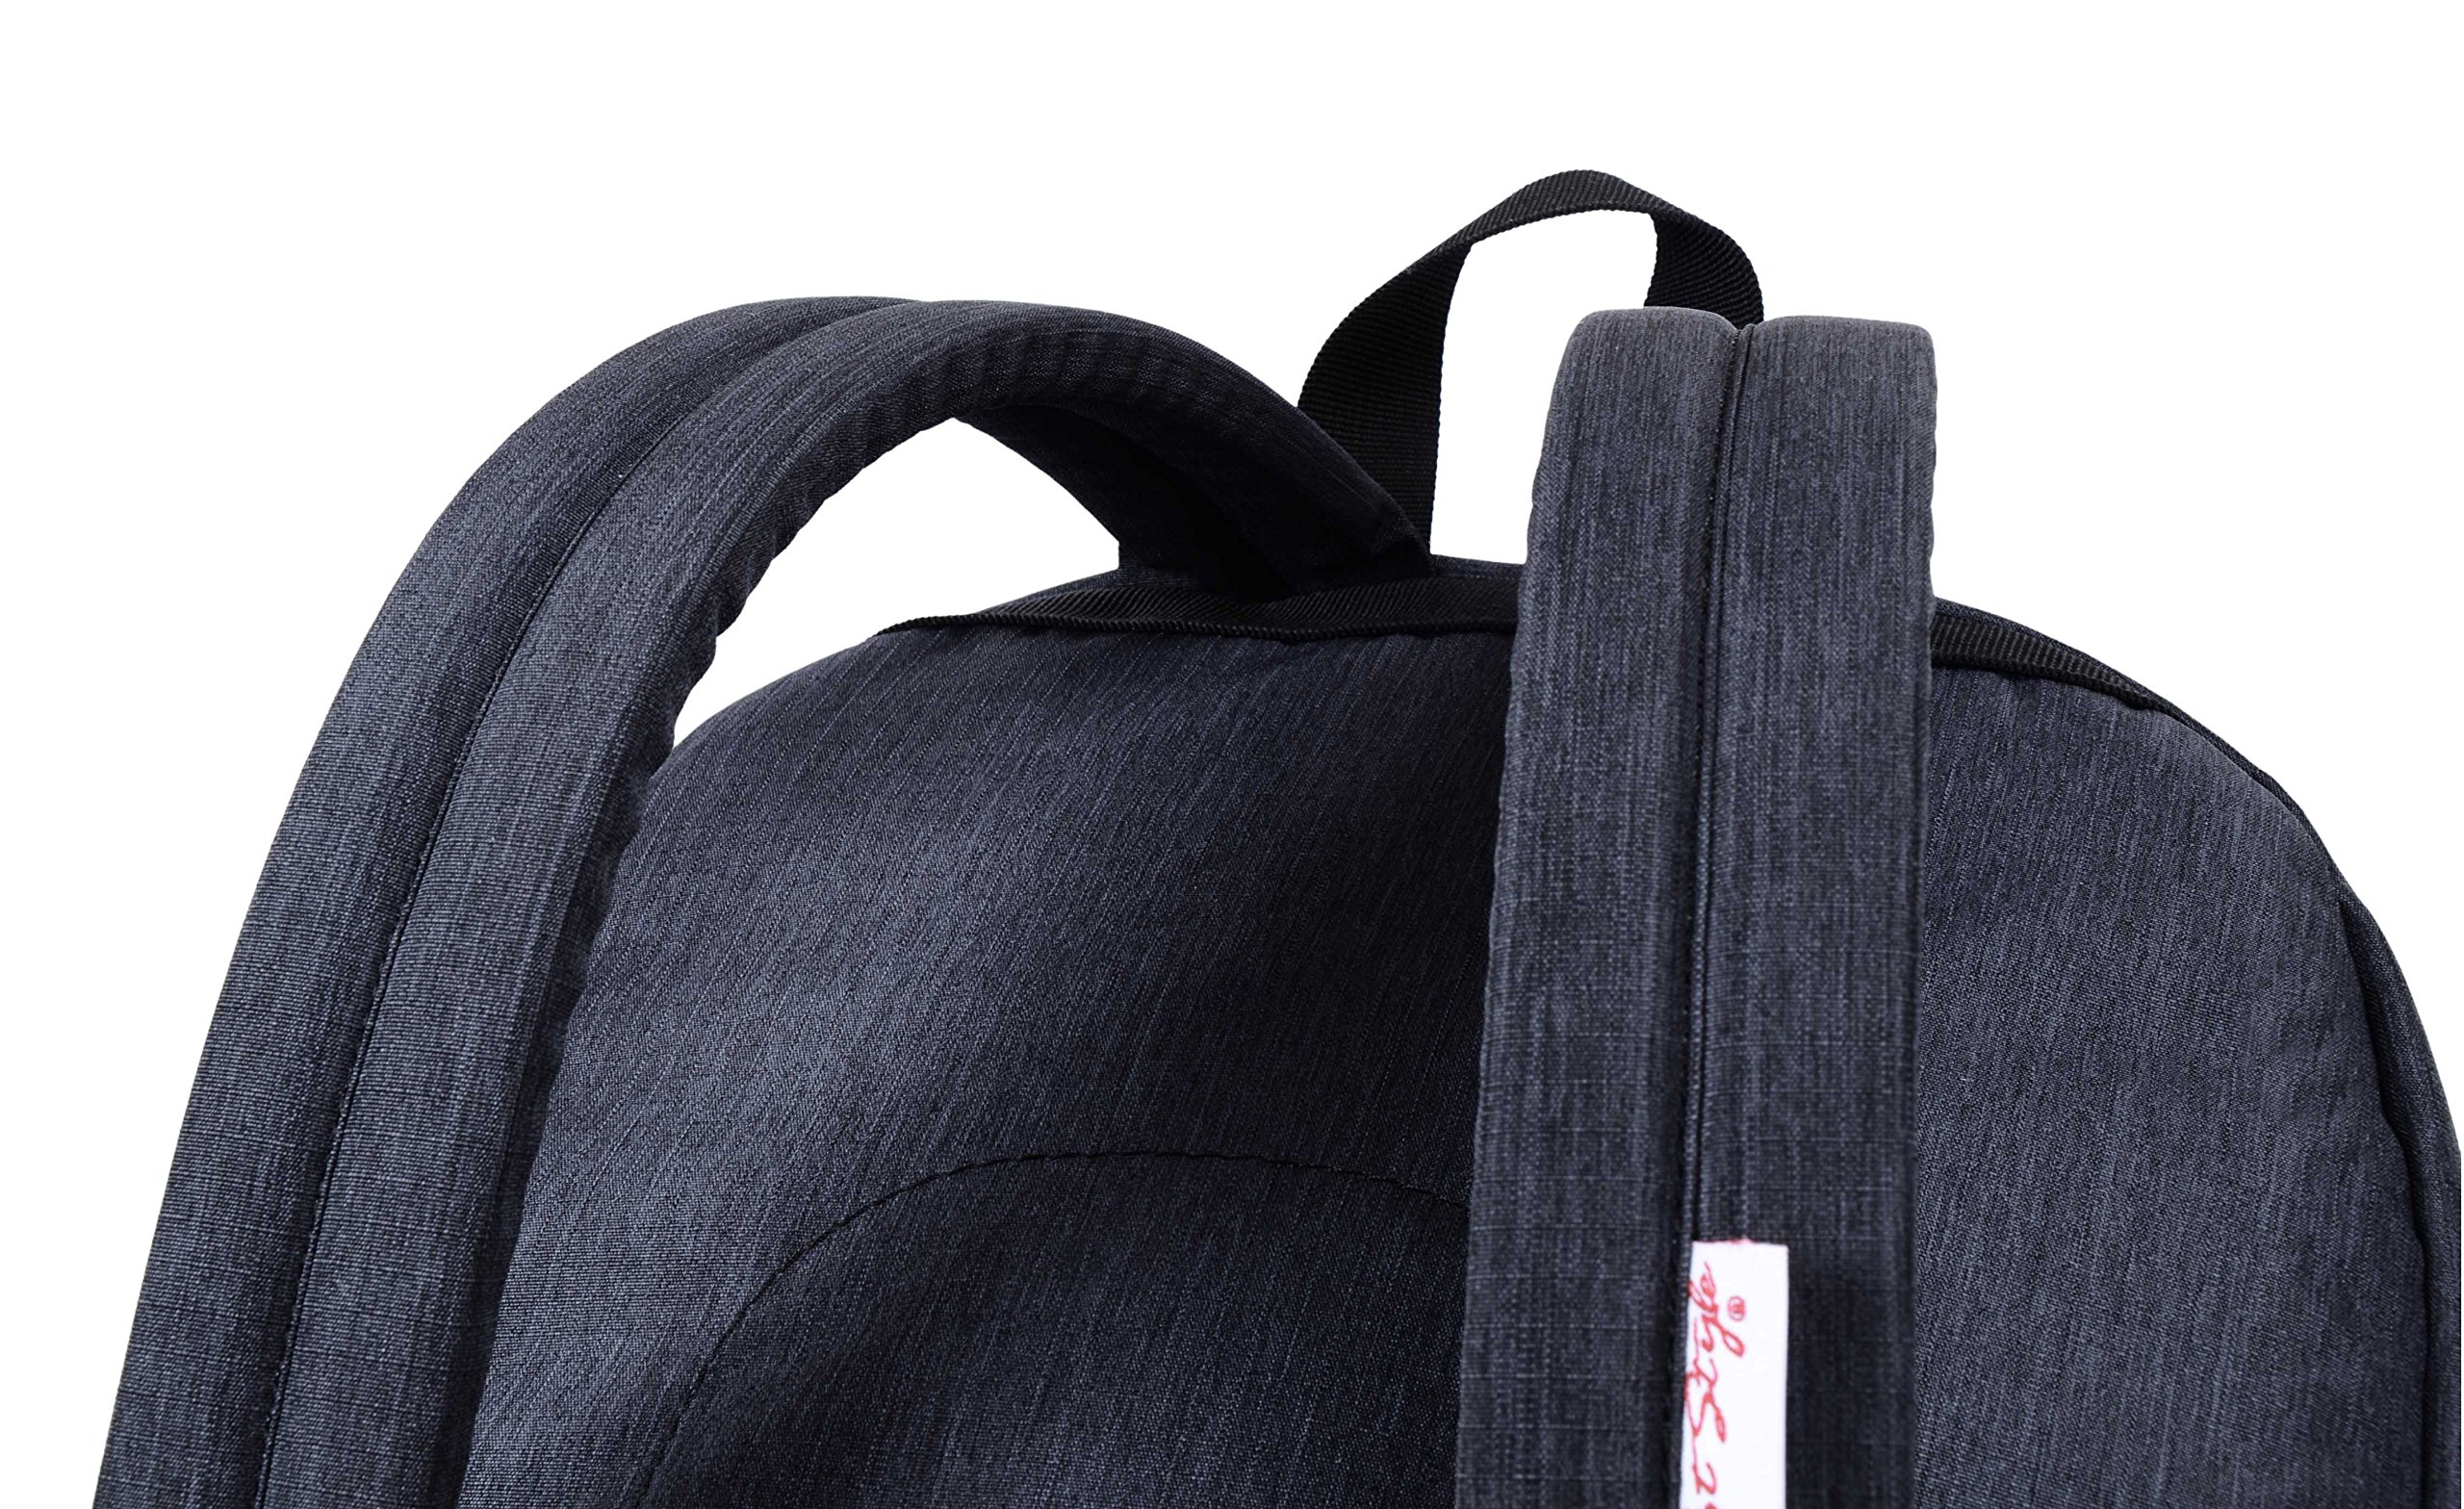 936Plus College School Backpack Travel Rucksack | Fits 15.6'' Laptop | 18''x12''x6'' | Black by hotstyle (Image #6)